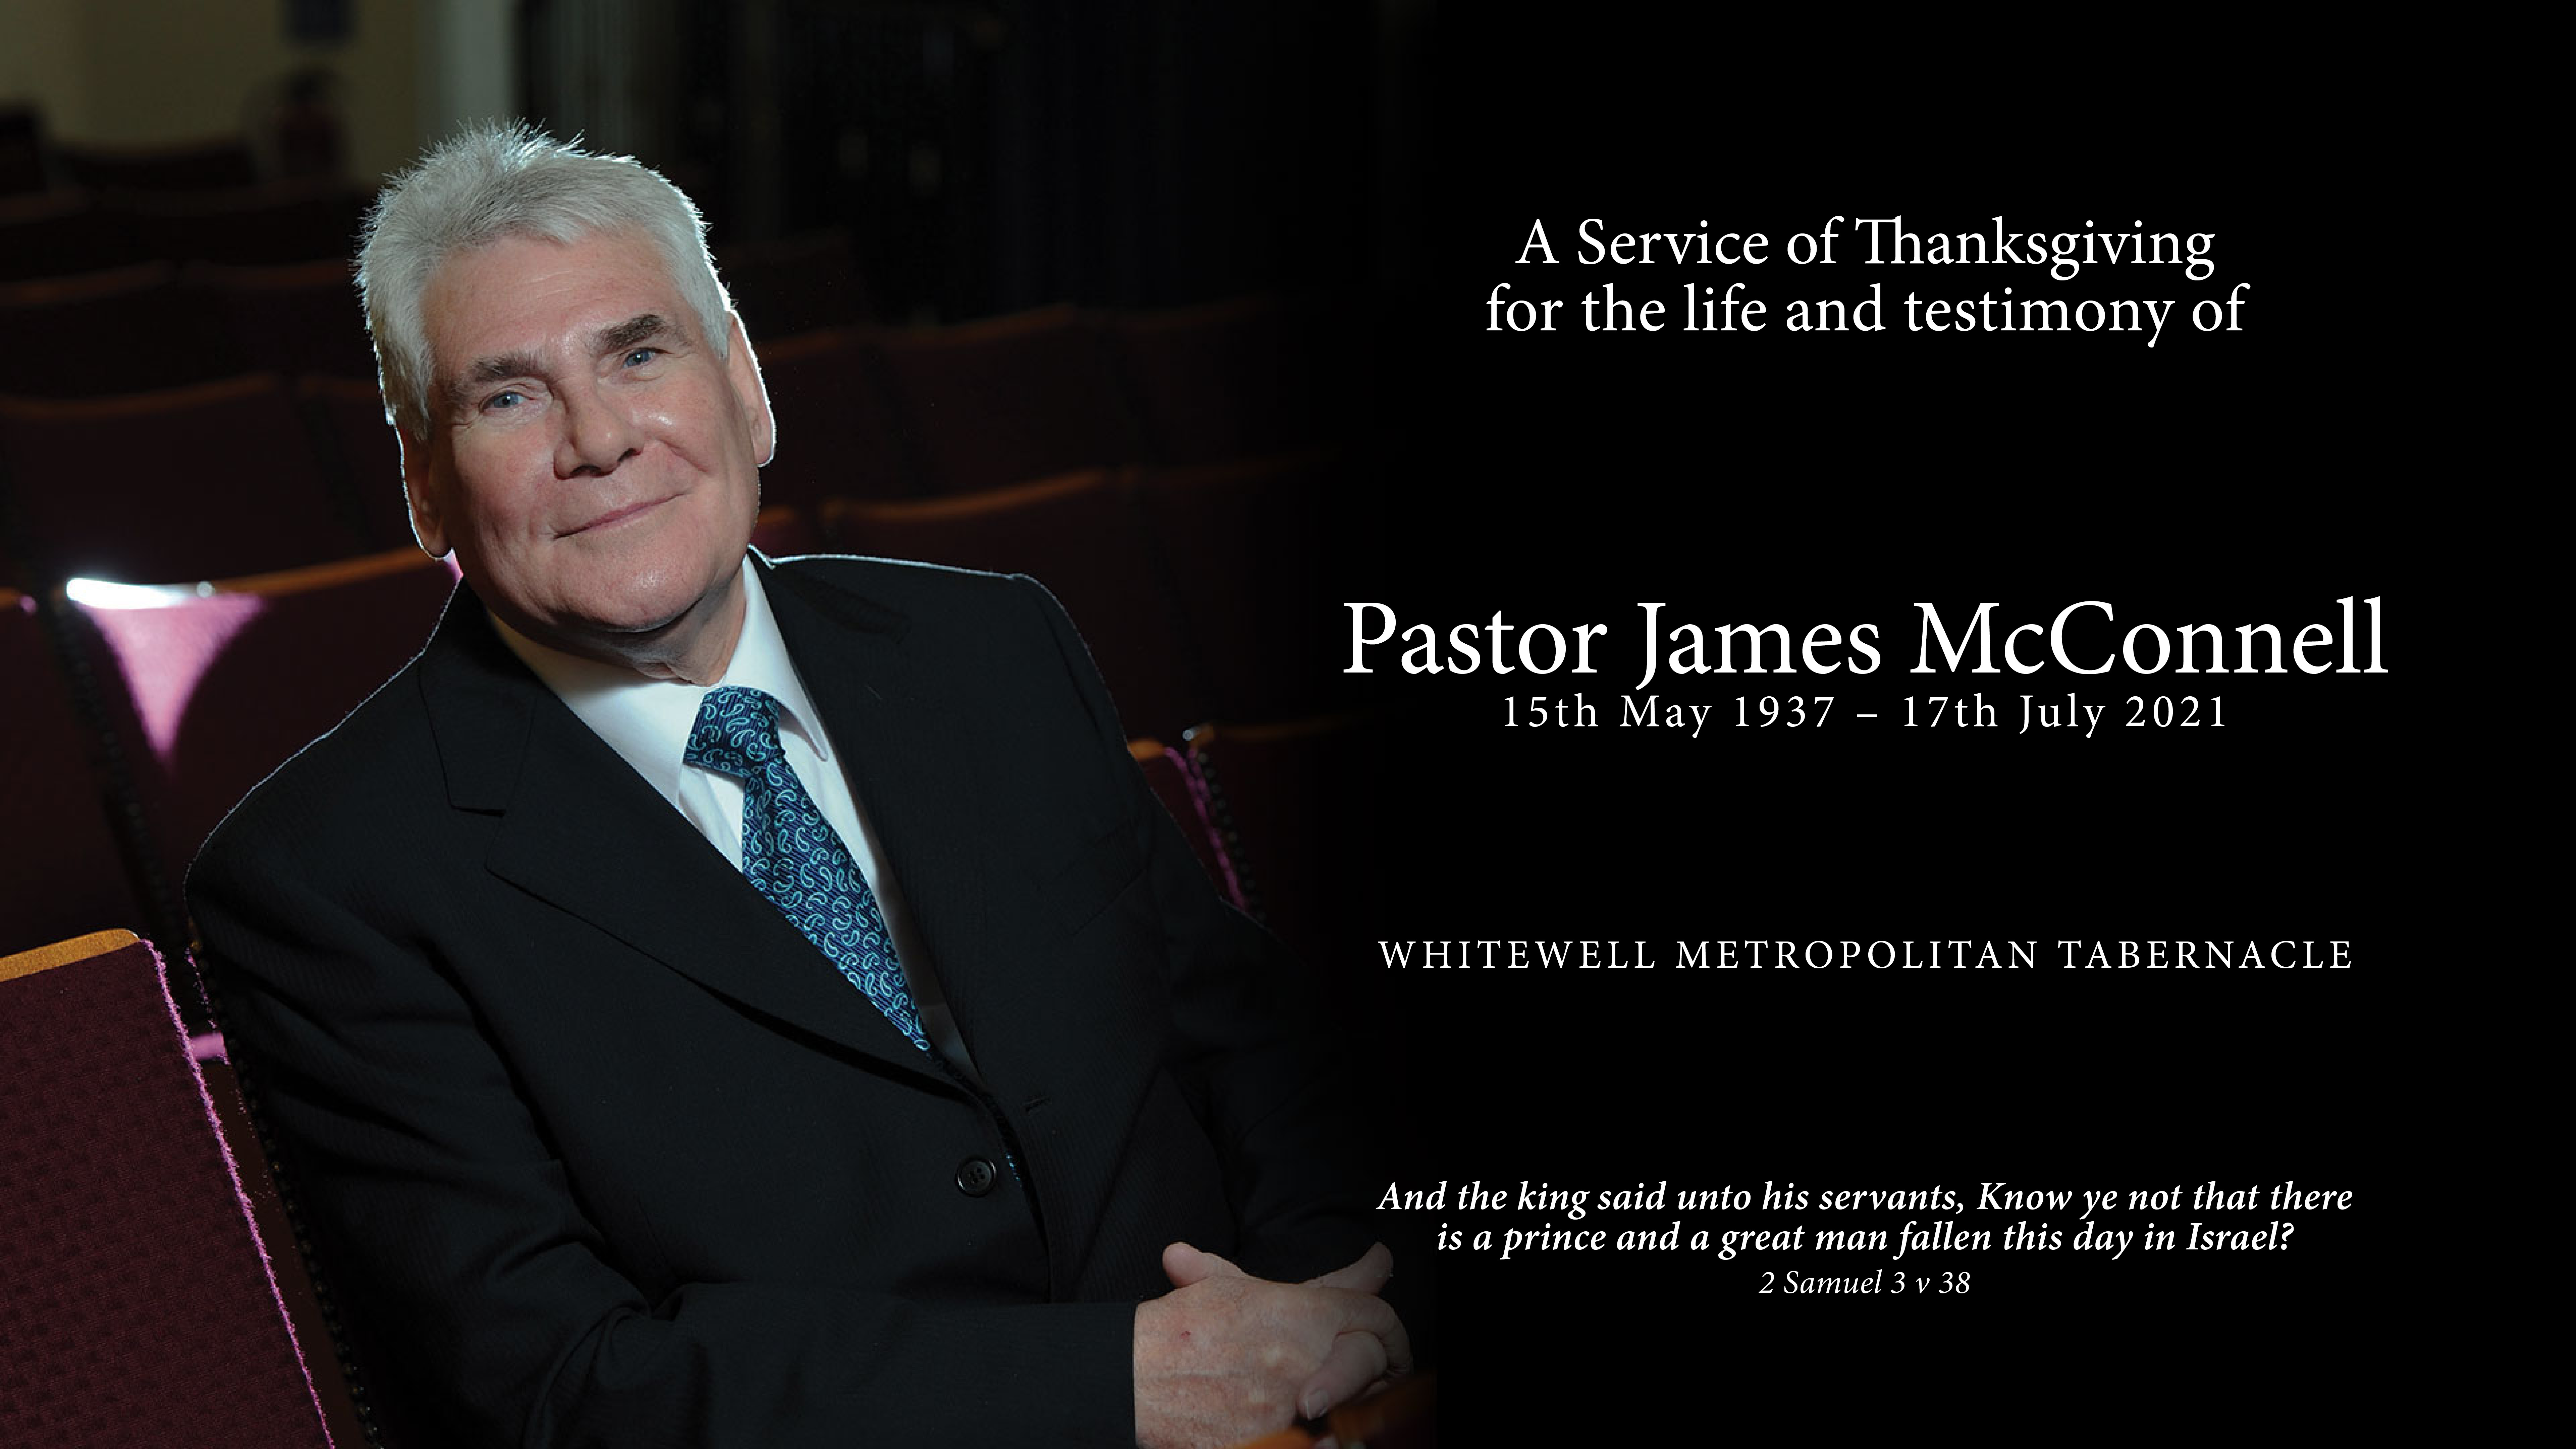 Thanksgiving Service - Pastor James McConnell